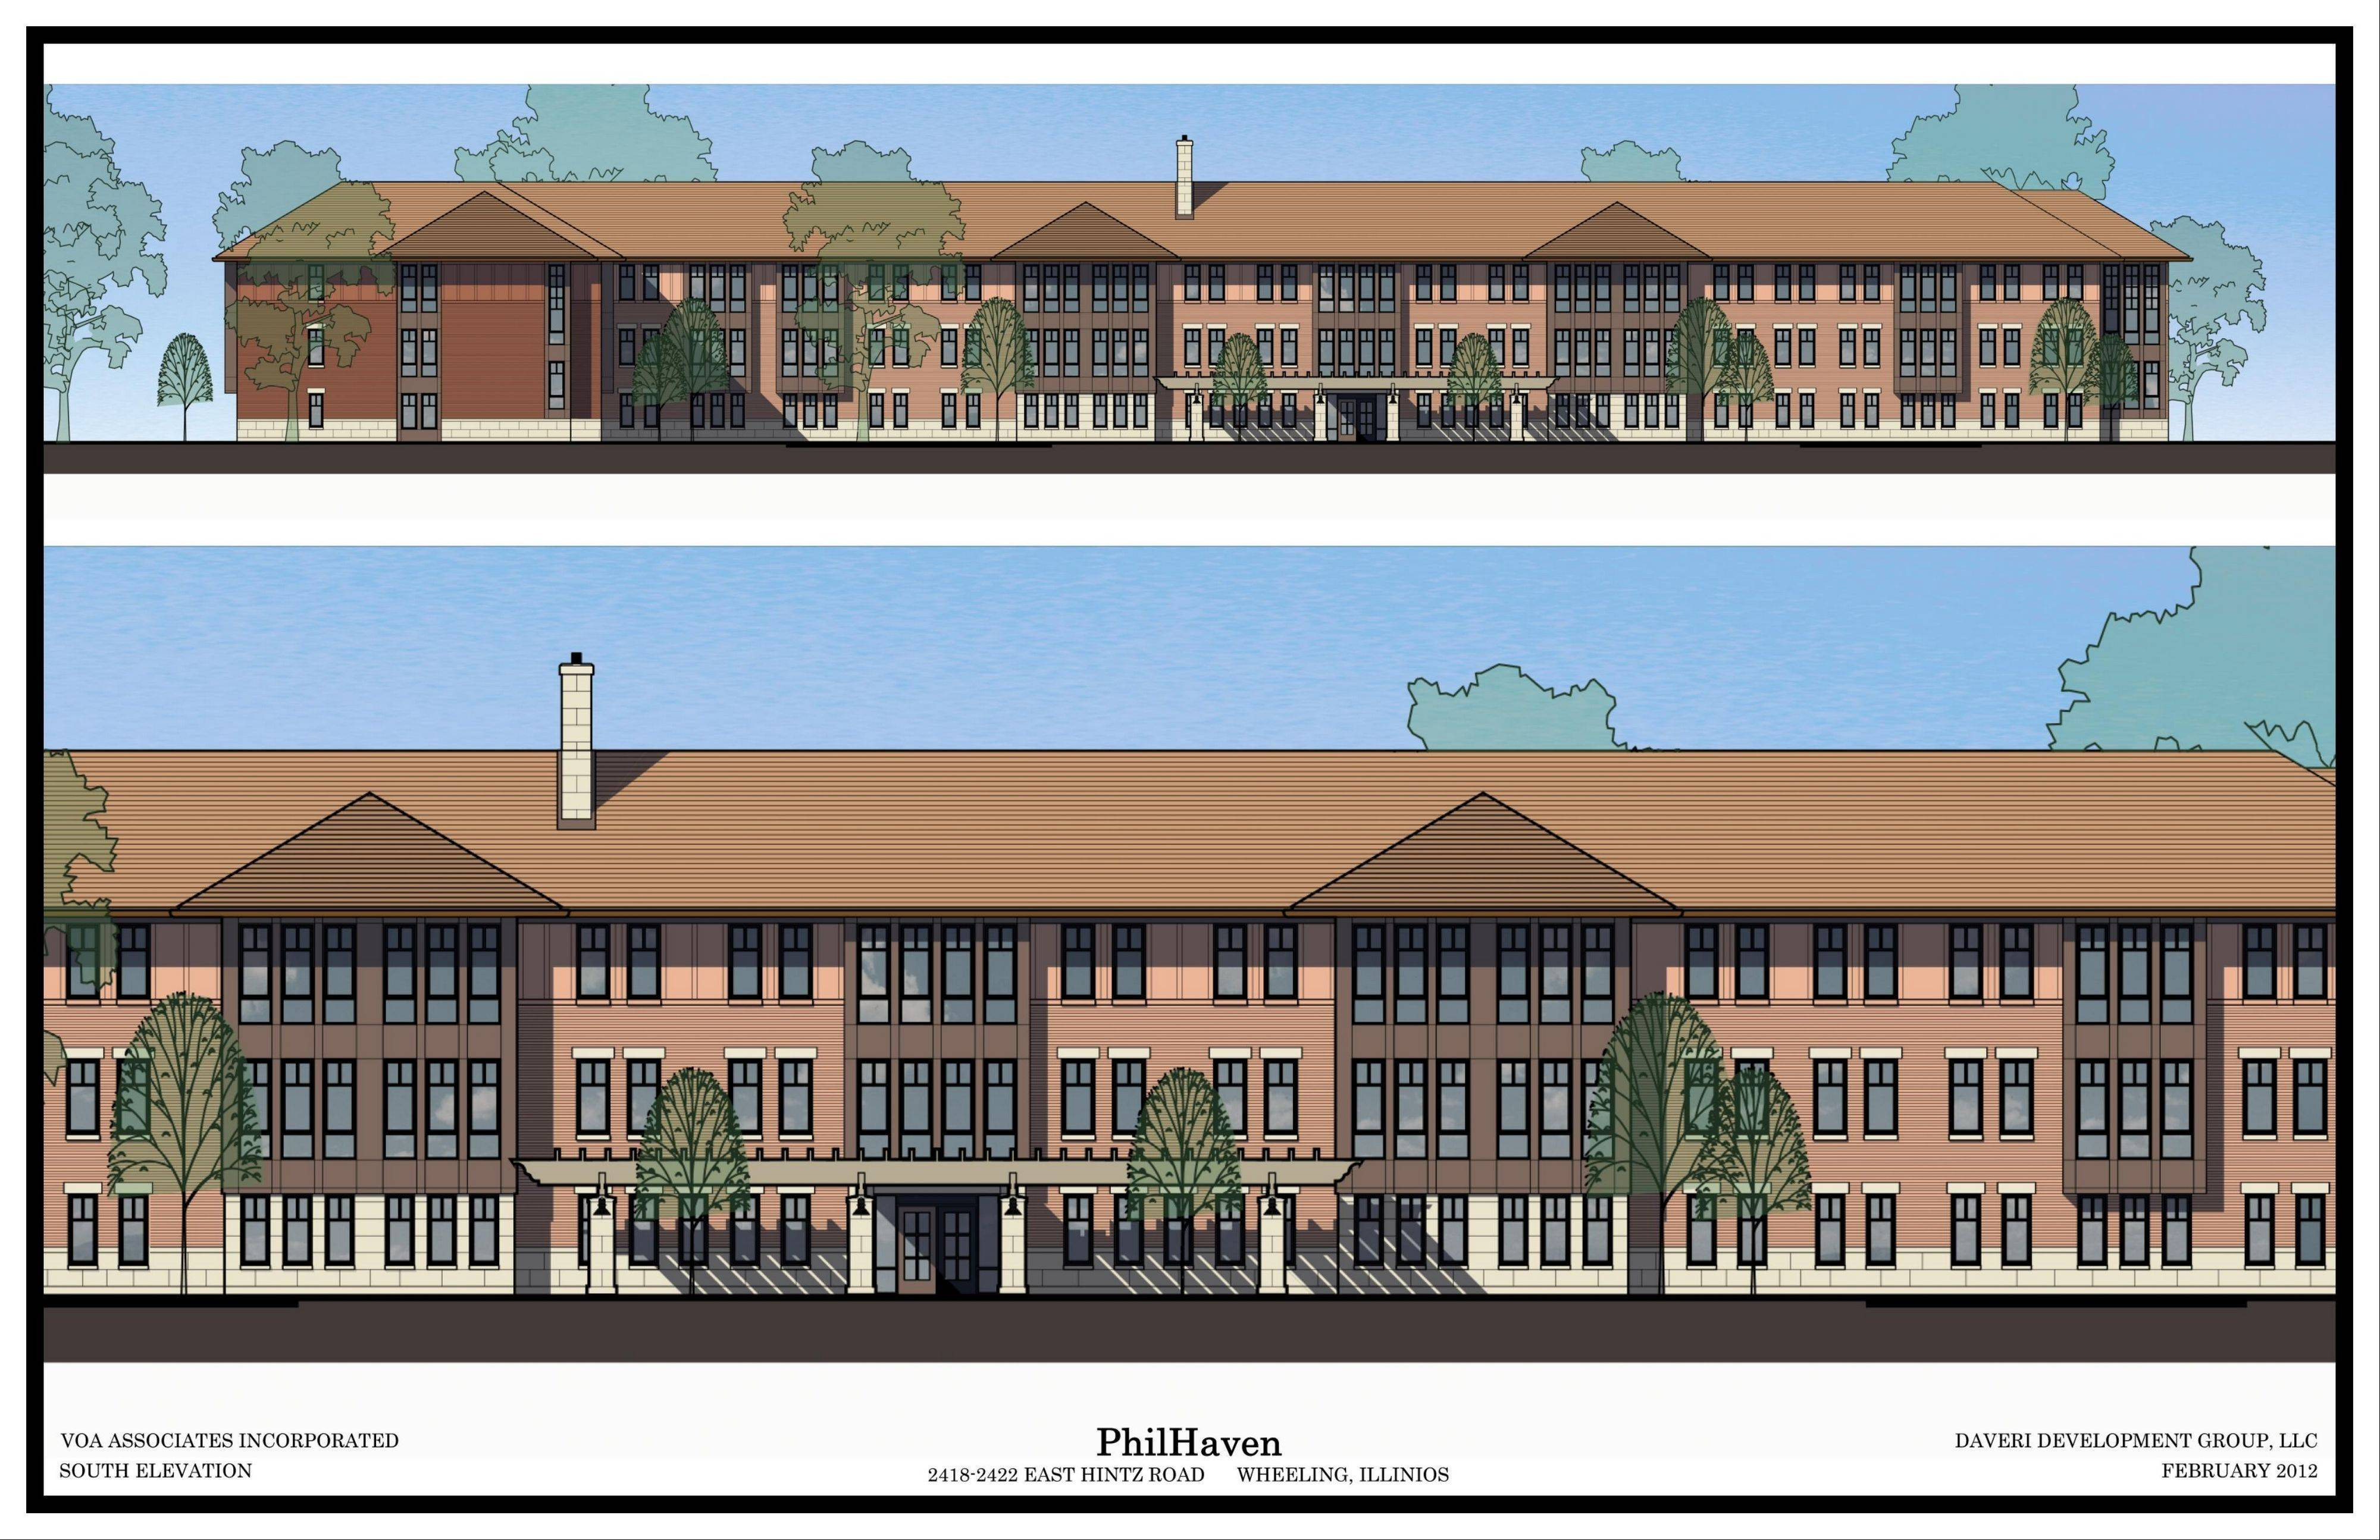 The developer behind the proposed PhilHaven apartment building in Wheeling is asking a federal judge for a preliminary injunction allowing them to proceed with the project, in spite of the village's rejection of their plans.